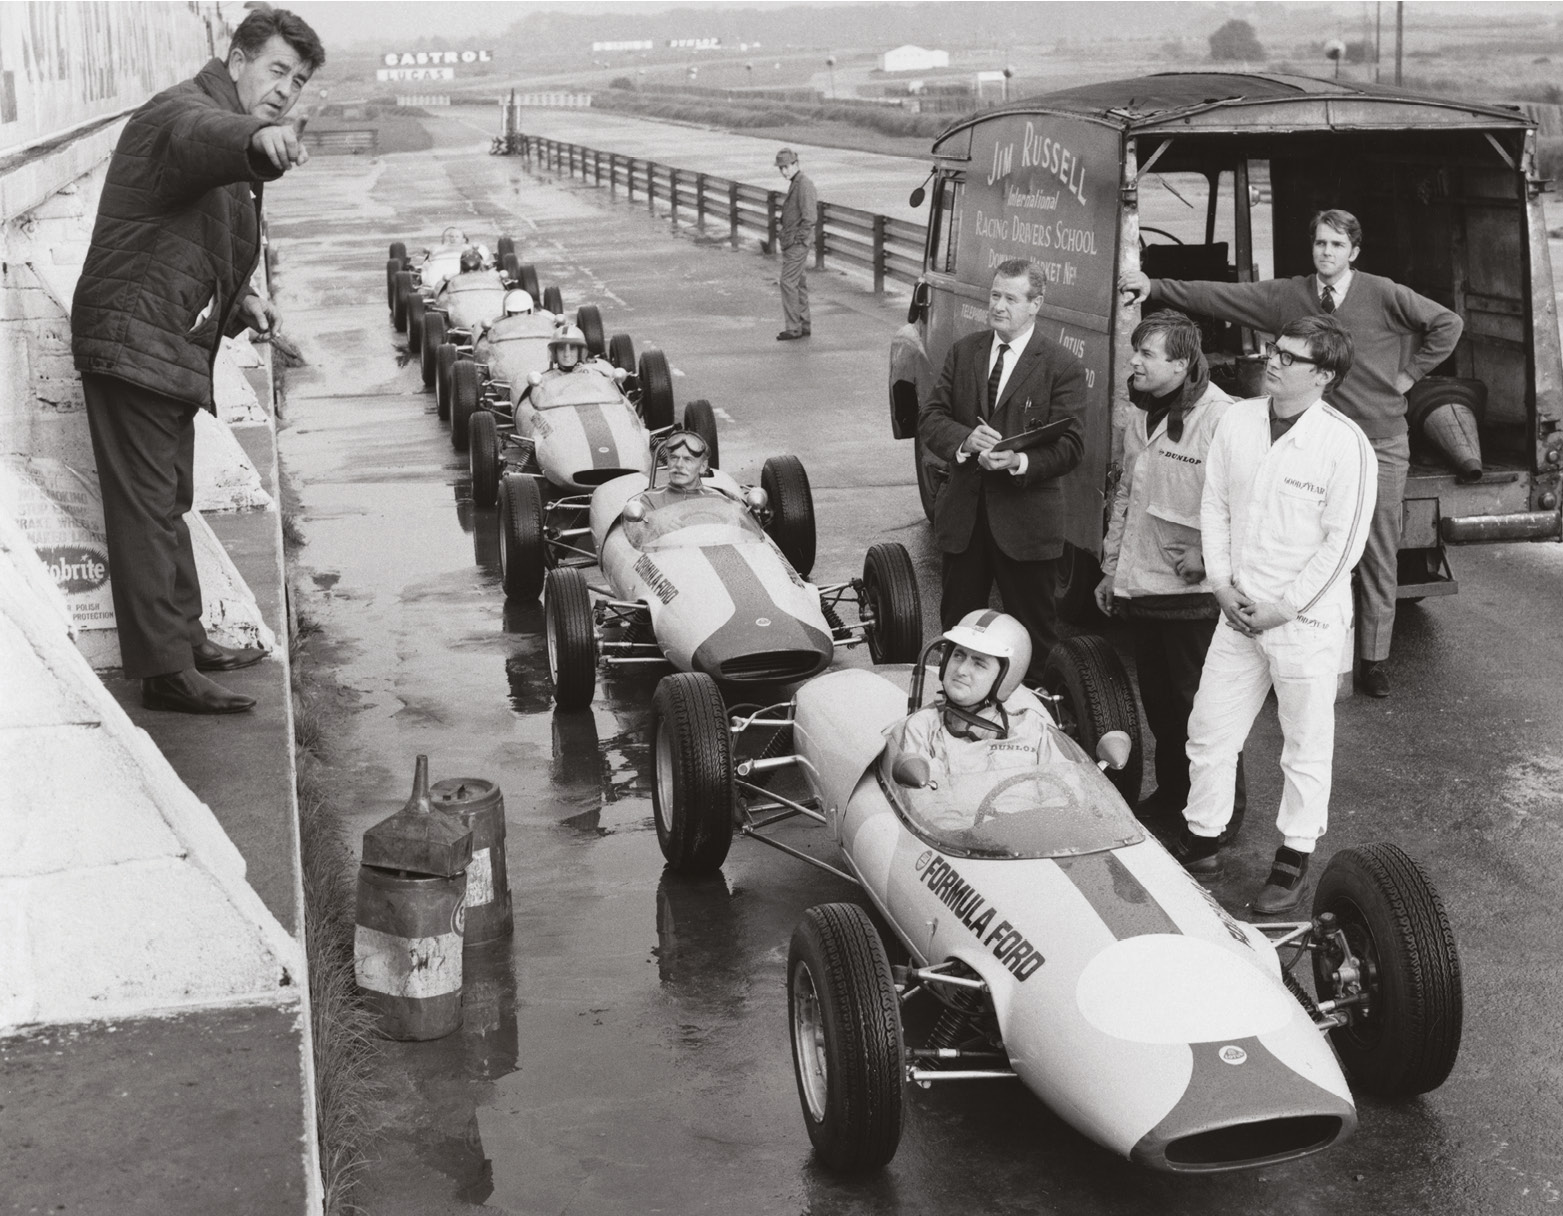 Mark Cole, pictured here in the fourth car back, recounts his memories of Jim Russell's school in 1967